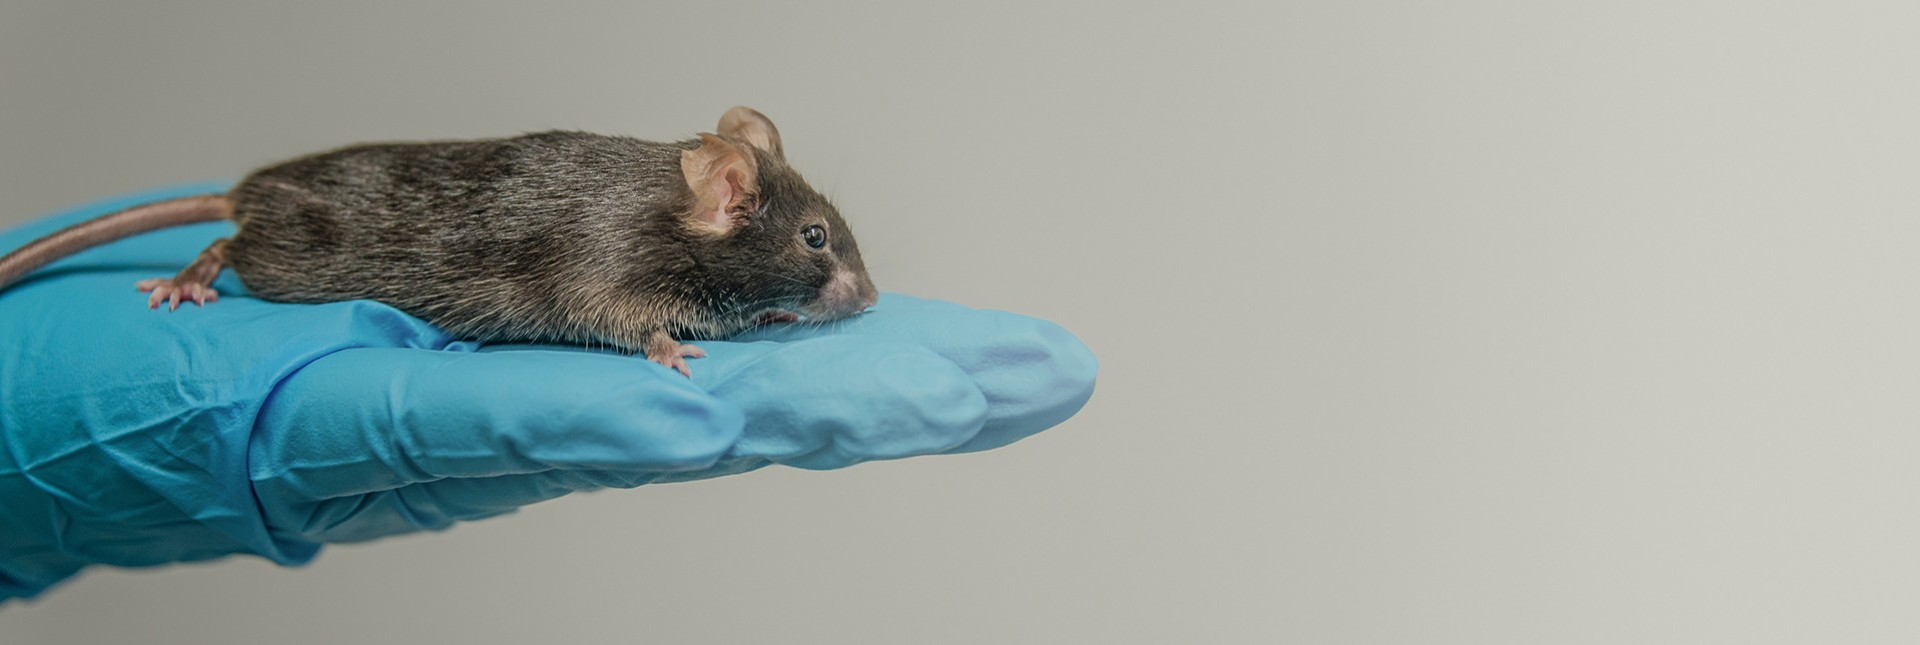 Animal Testing in Food Research | Ask the Expert